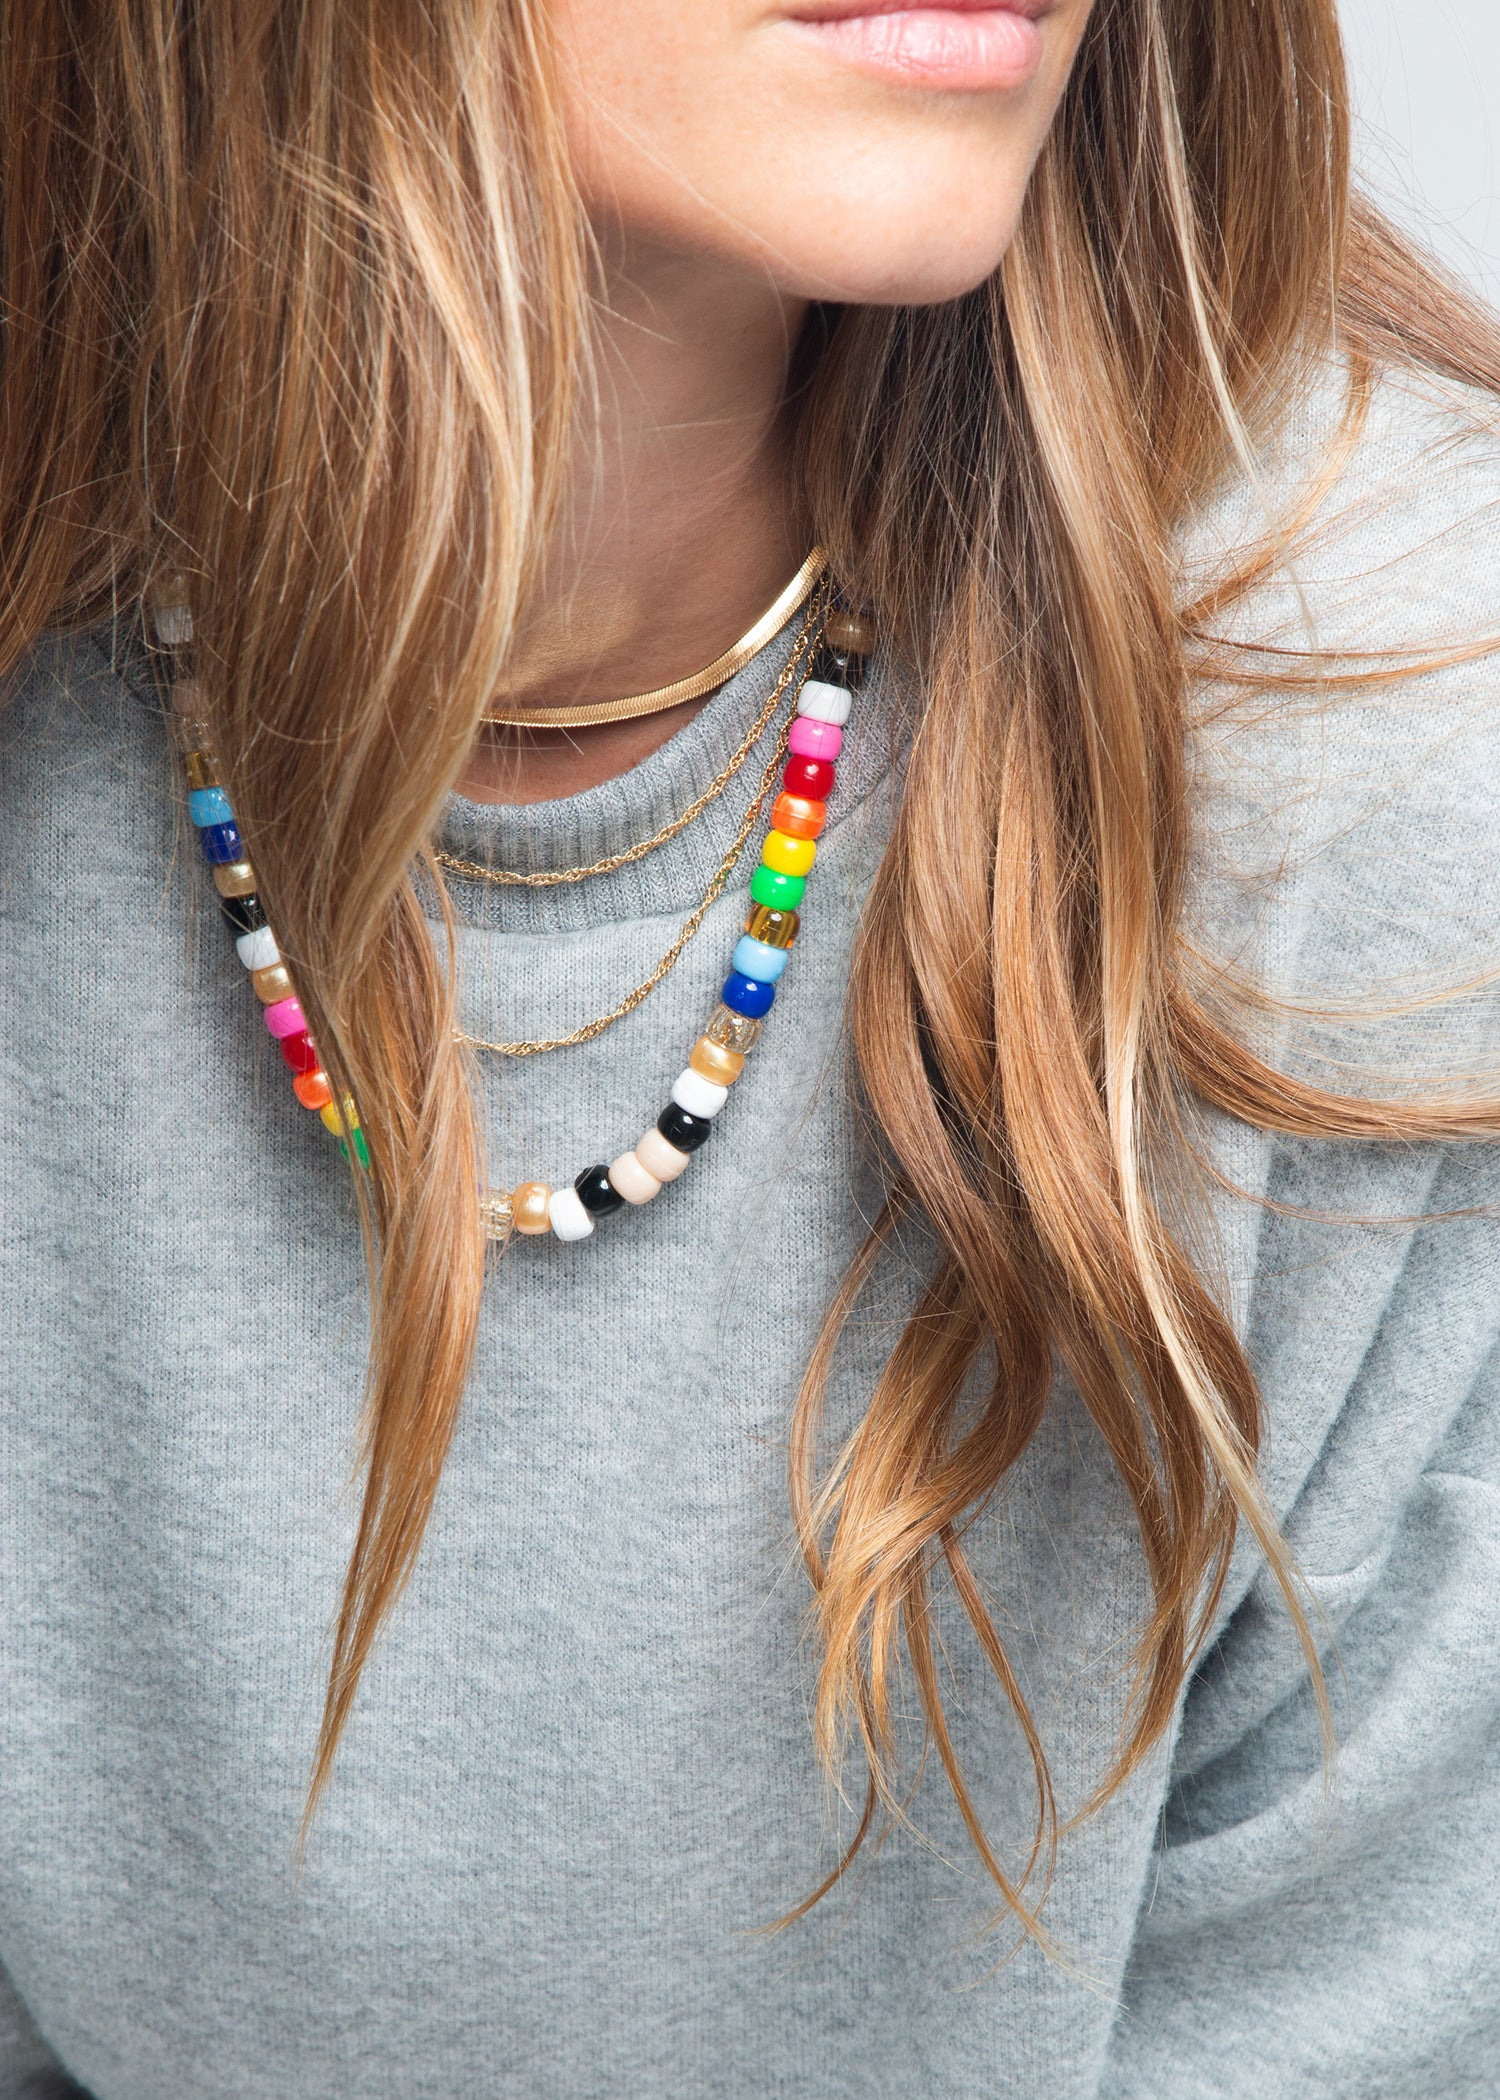 TREND: LAYERED JEWELRY